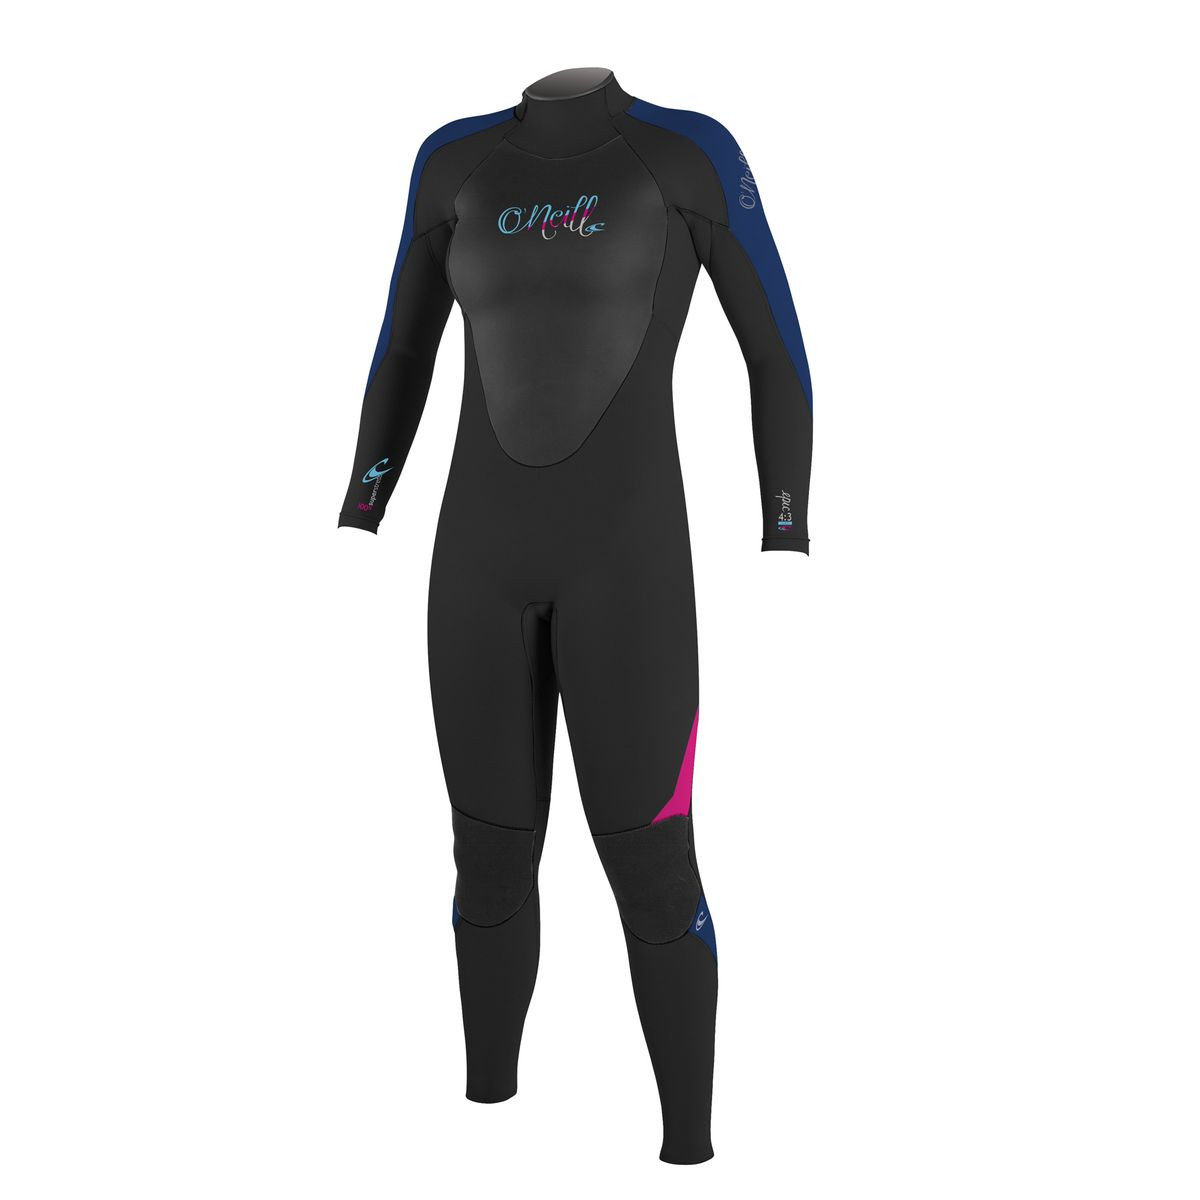 O'Neill Womens Epic Back Zip 4/3mm Wetsuit - Black/ Navy/ Berry